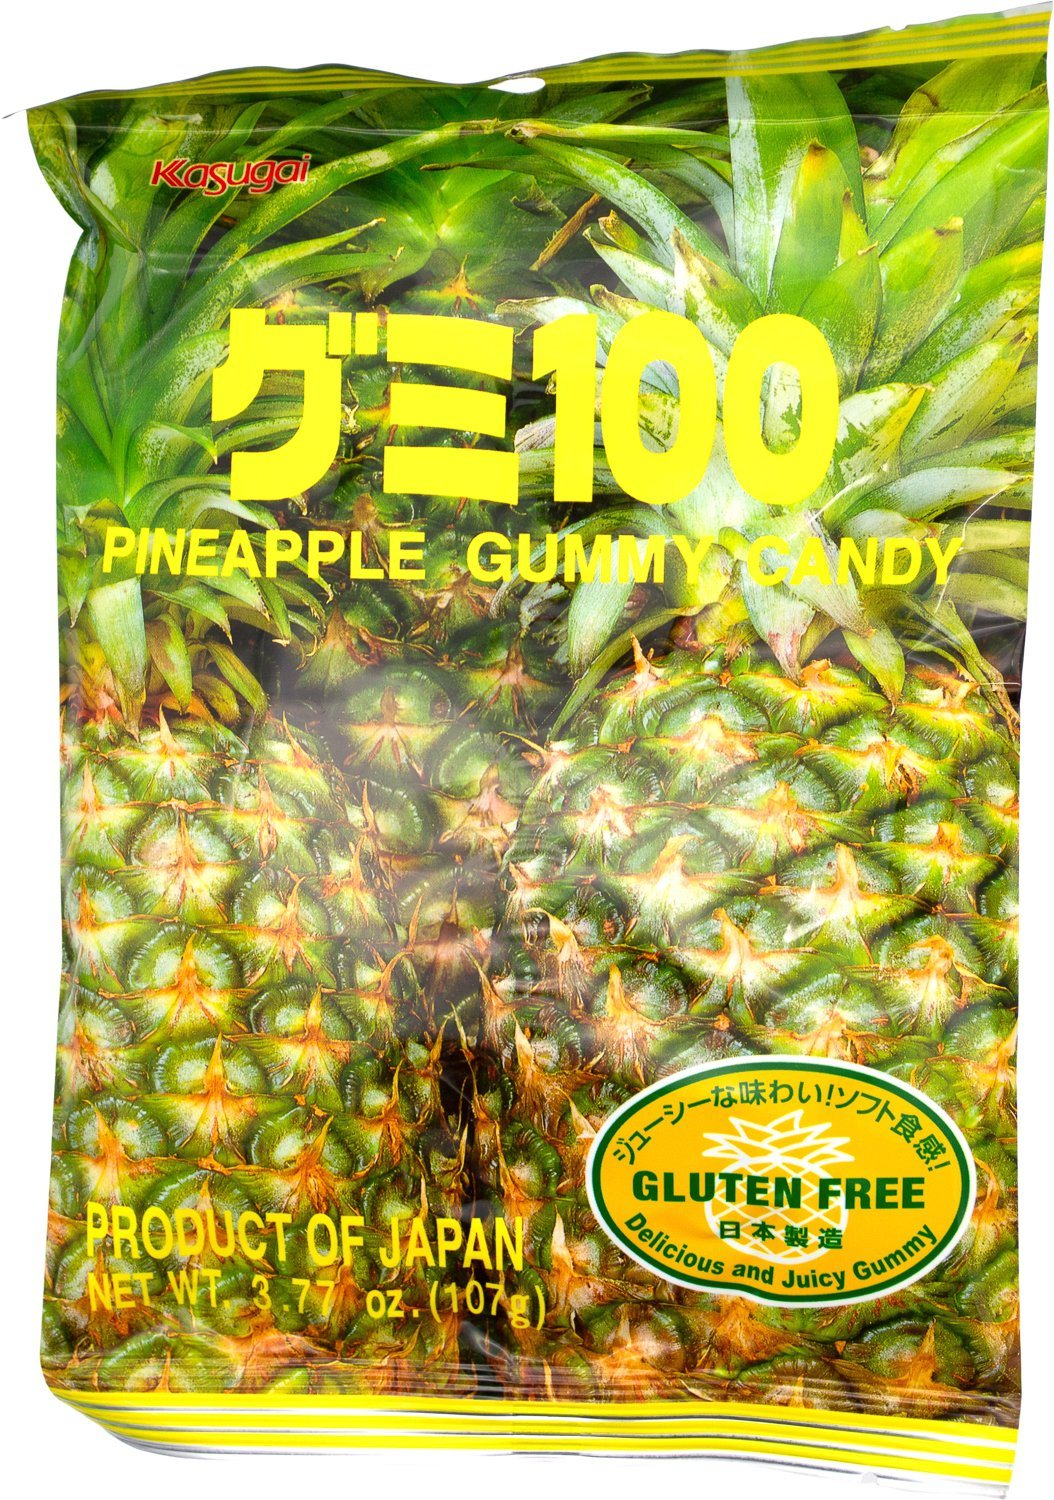 Kasugai Gummy Candy Kasugai Pineapple 3.77 Ounce